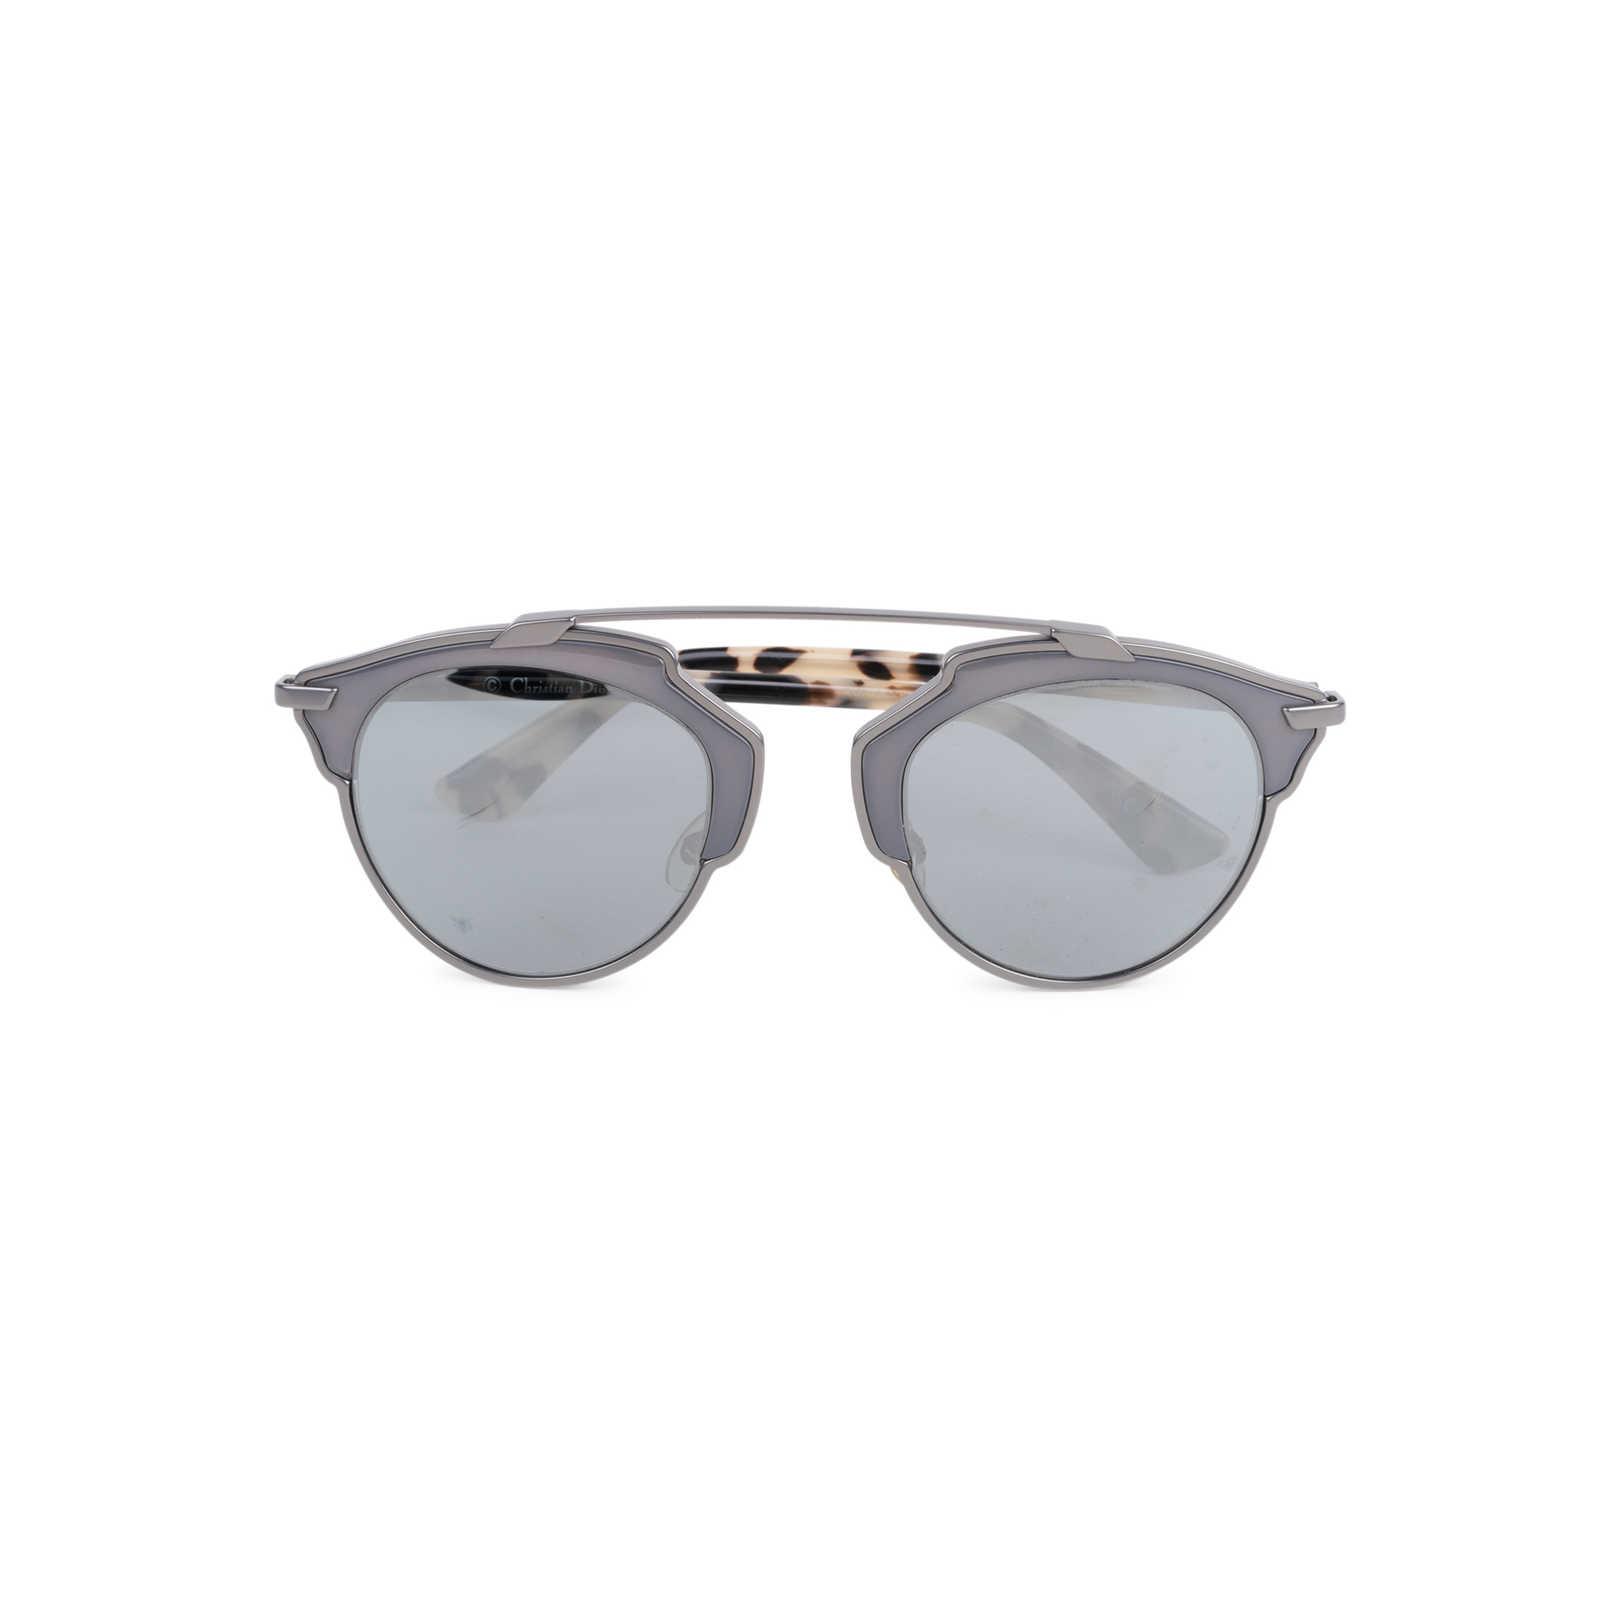 a8b2335bde Authentic Second Hand Christian Dior So Real Tortoiseshell Mirrored  Sunglasses (PSS-145-00263 ...